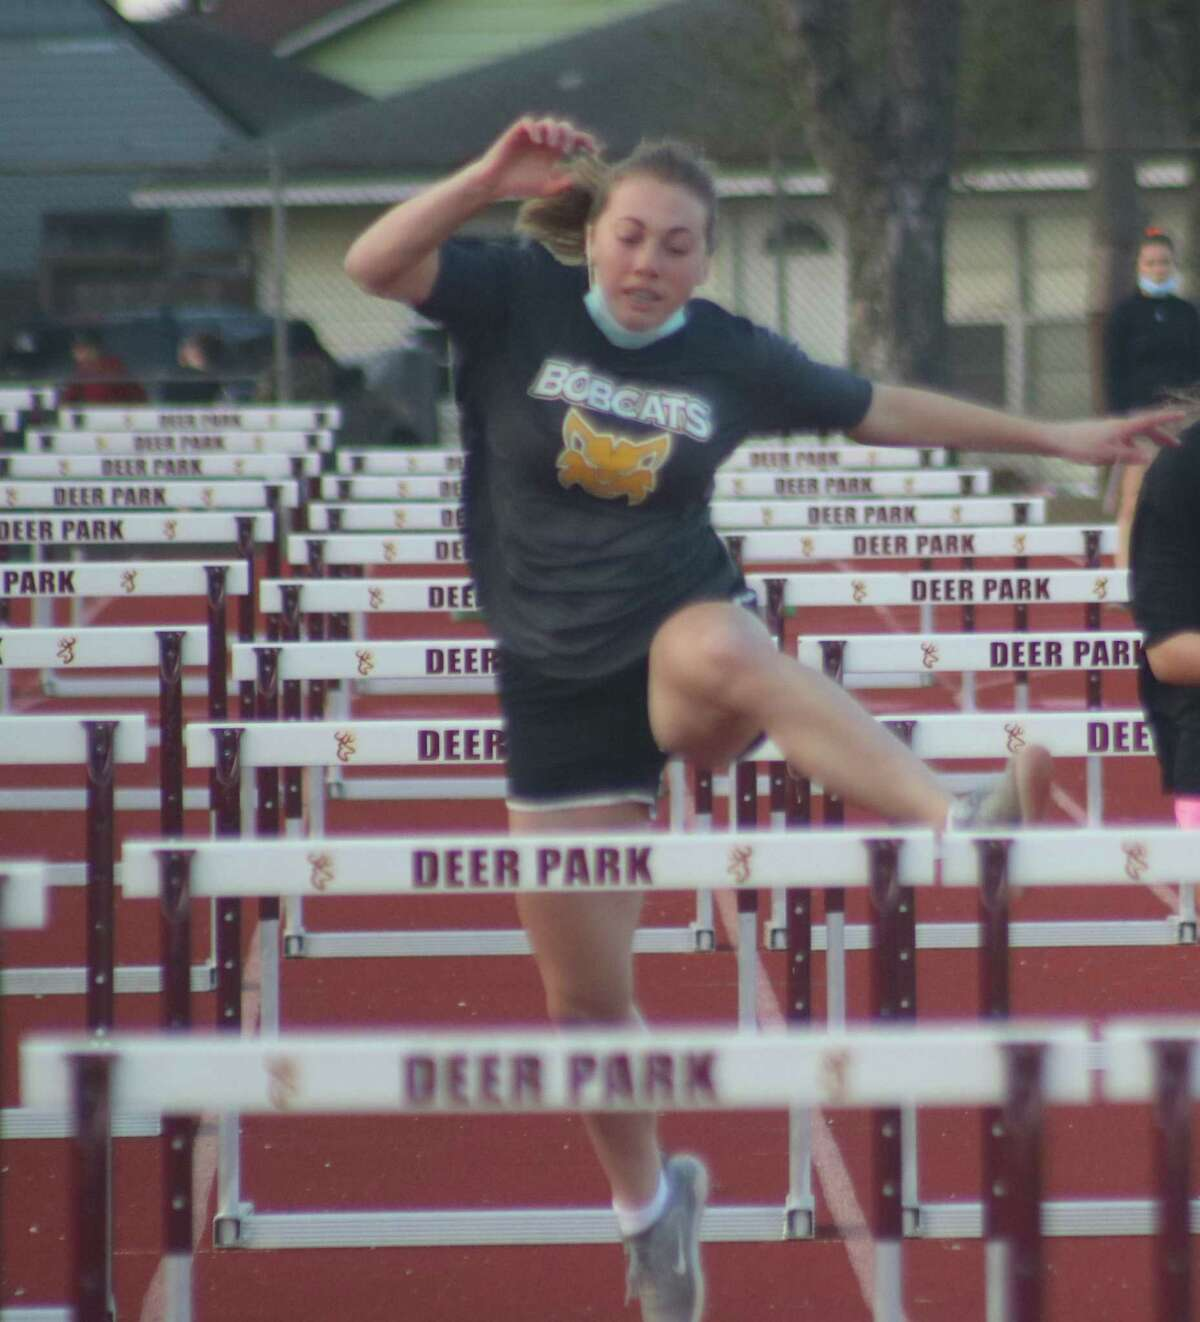 Alyssa Carroll tries out a series of hurdles at McLean Stadium Wednesday. She'll see how she stacks up against other hurdlers on Friday for the first test of the new track and field season.